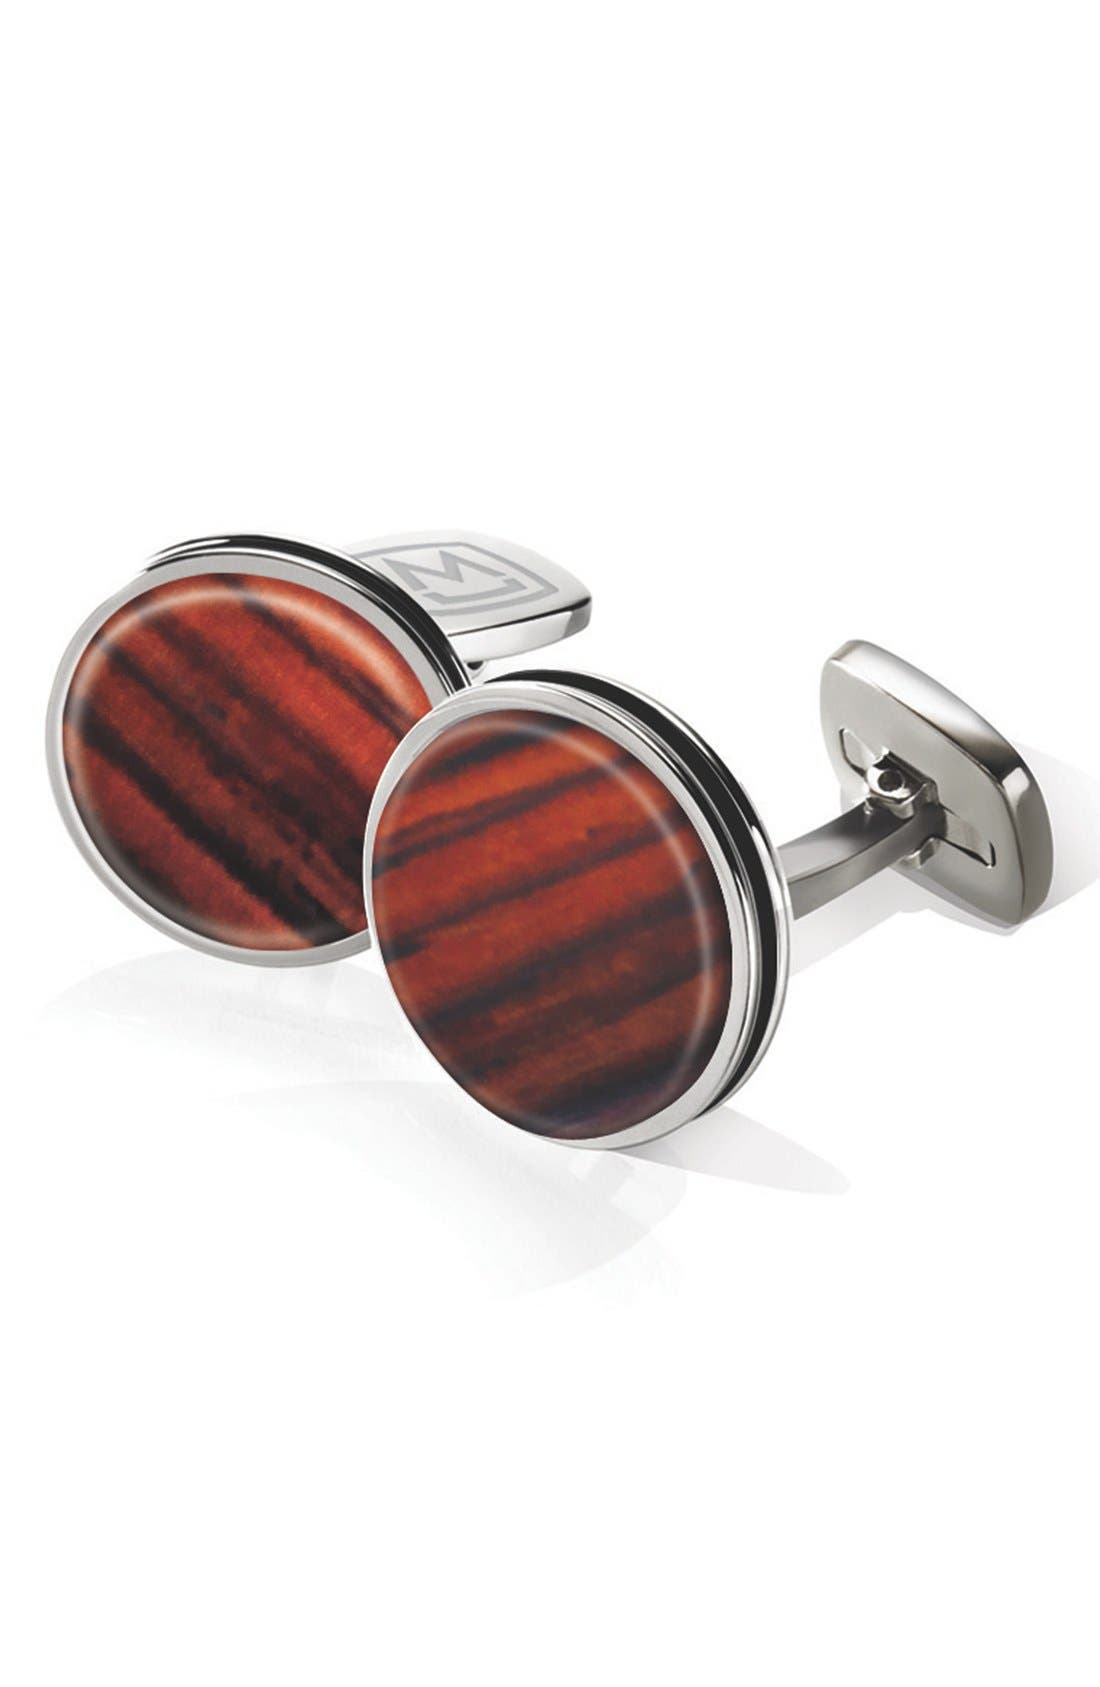 Cocobolo Cuff Links,                             Main thumbnail 1, color,                             040